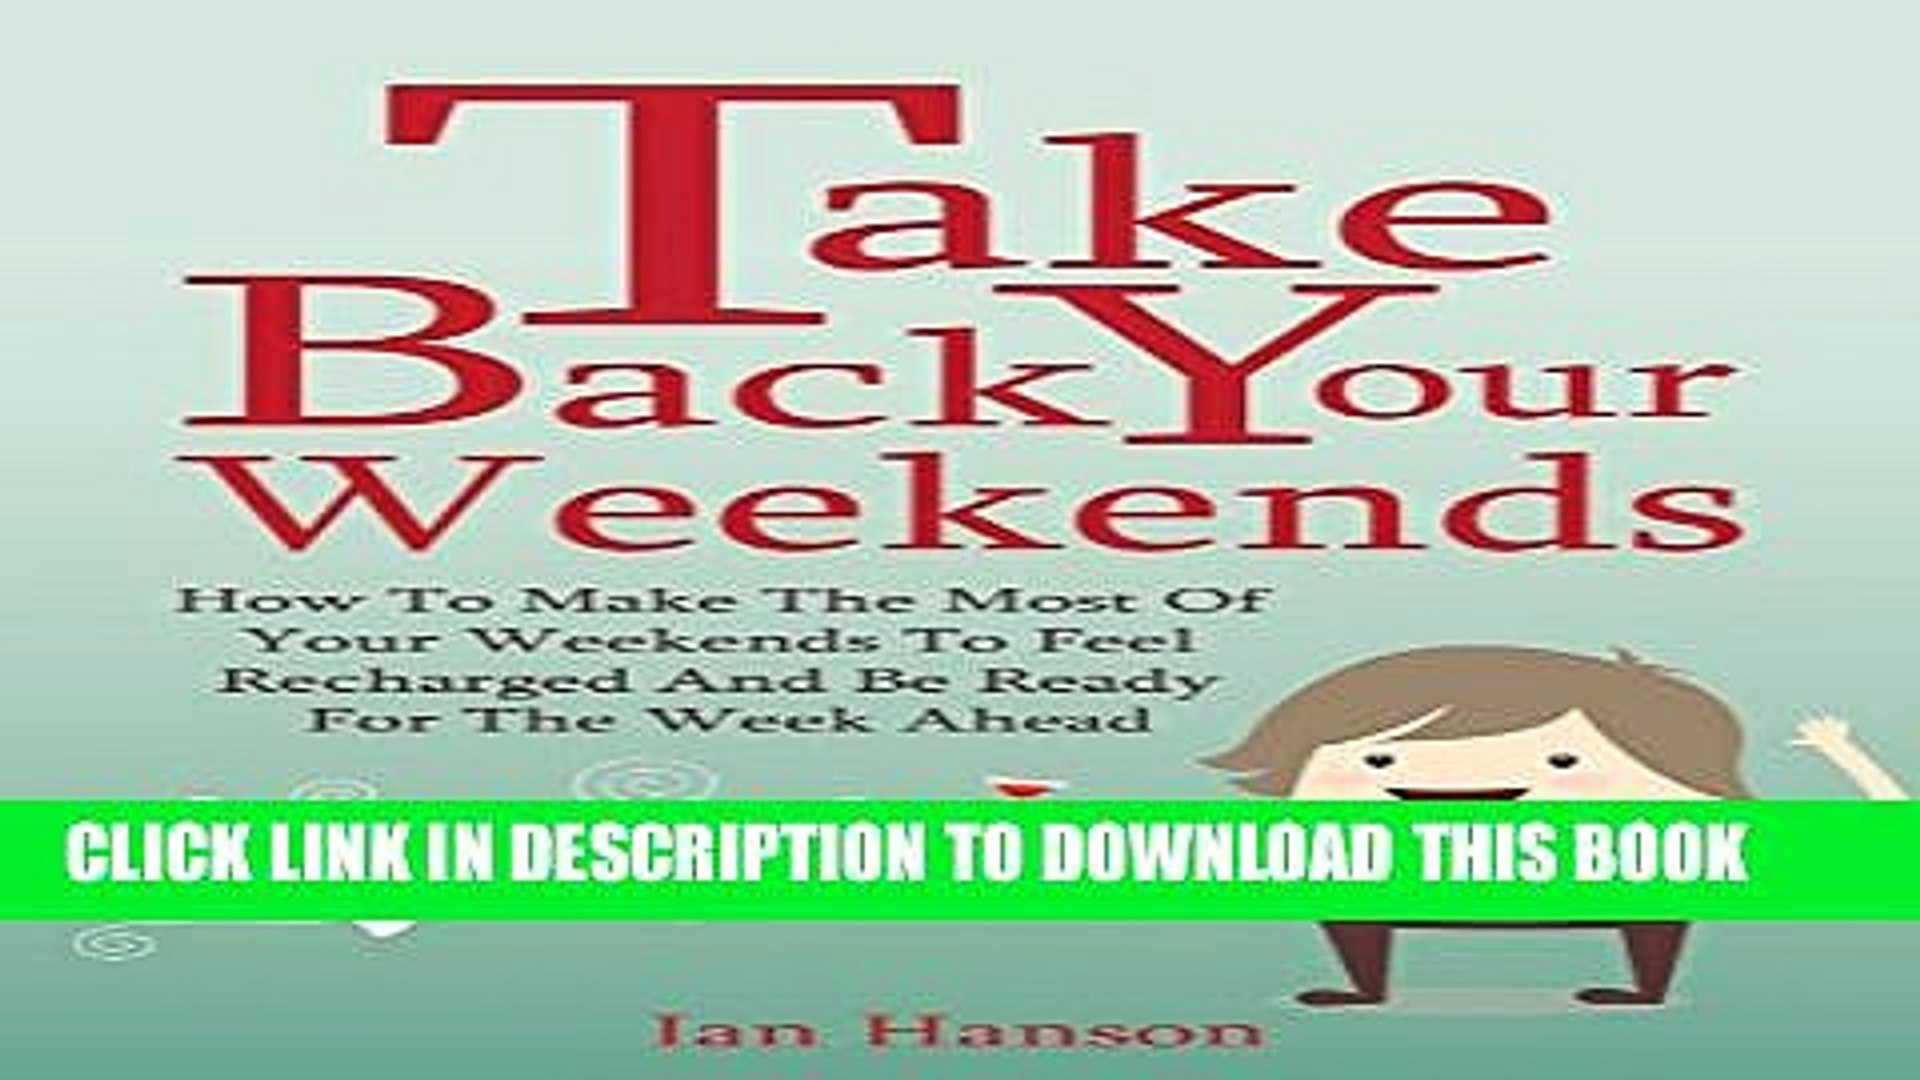 [PDF] Take Back Your Weekends - How To Make The Most Of Your Weekends To Feel Recharged And Be